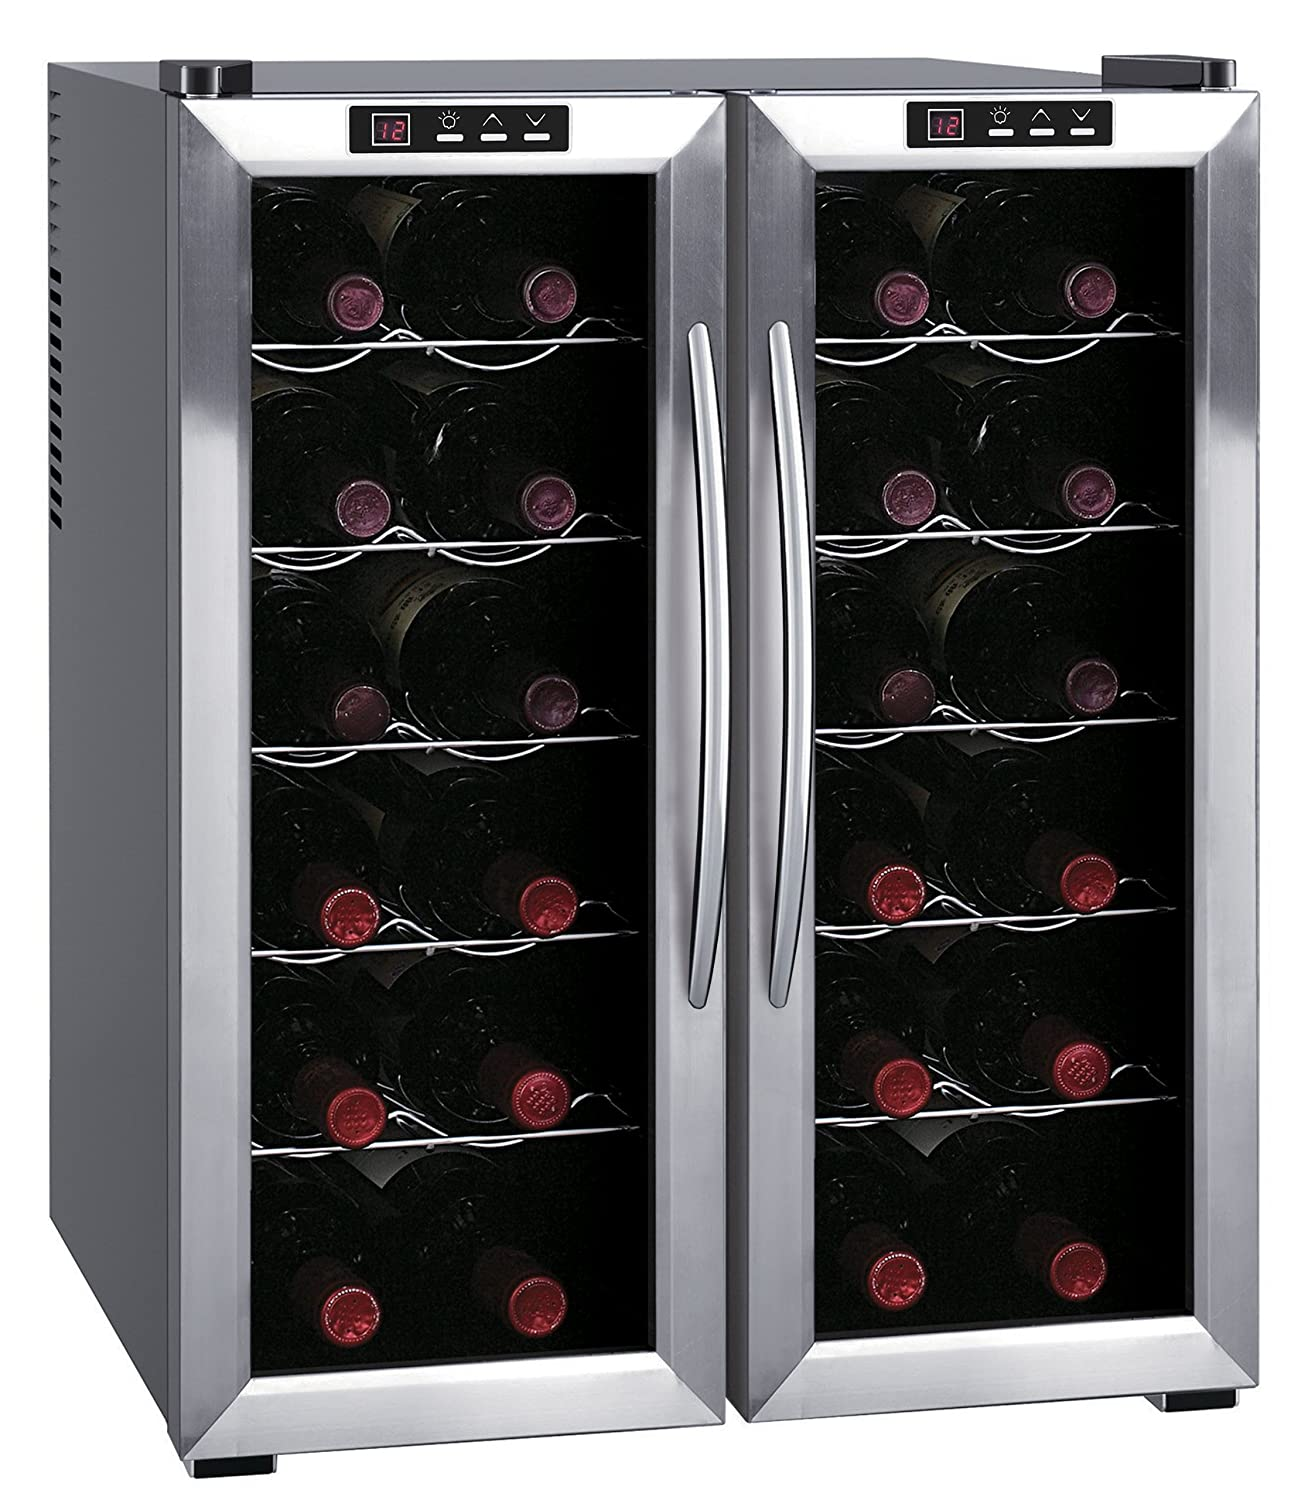 SPT WC-2461H Double-Door Dual-Zone Thermo-Electric Wine Cooler with Heating Sunpentown